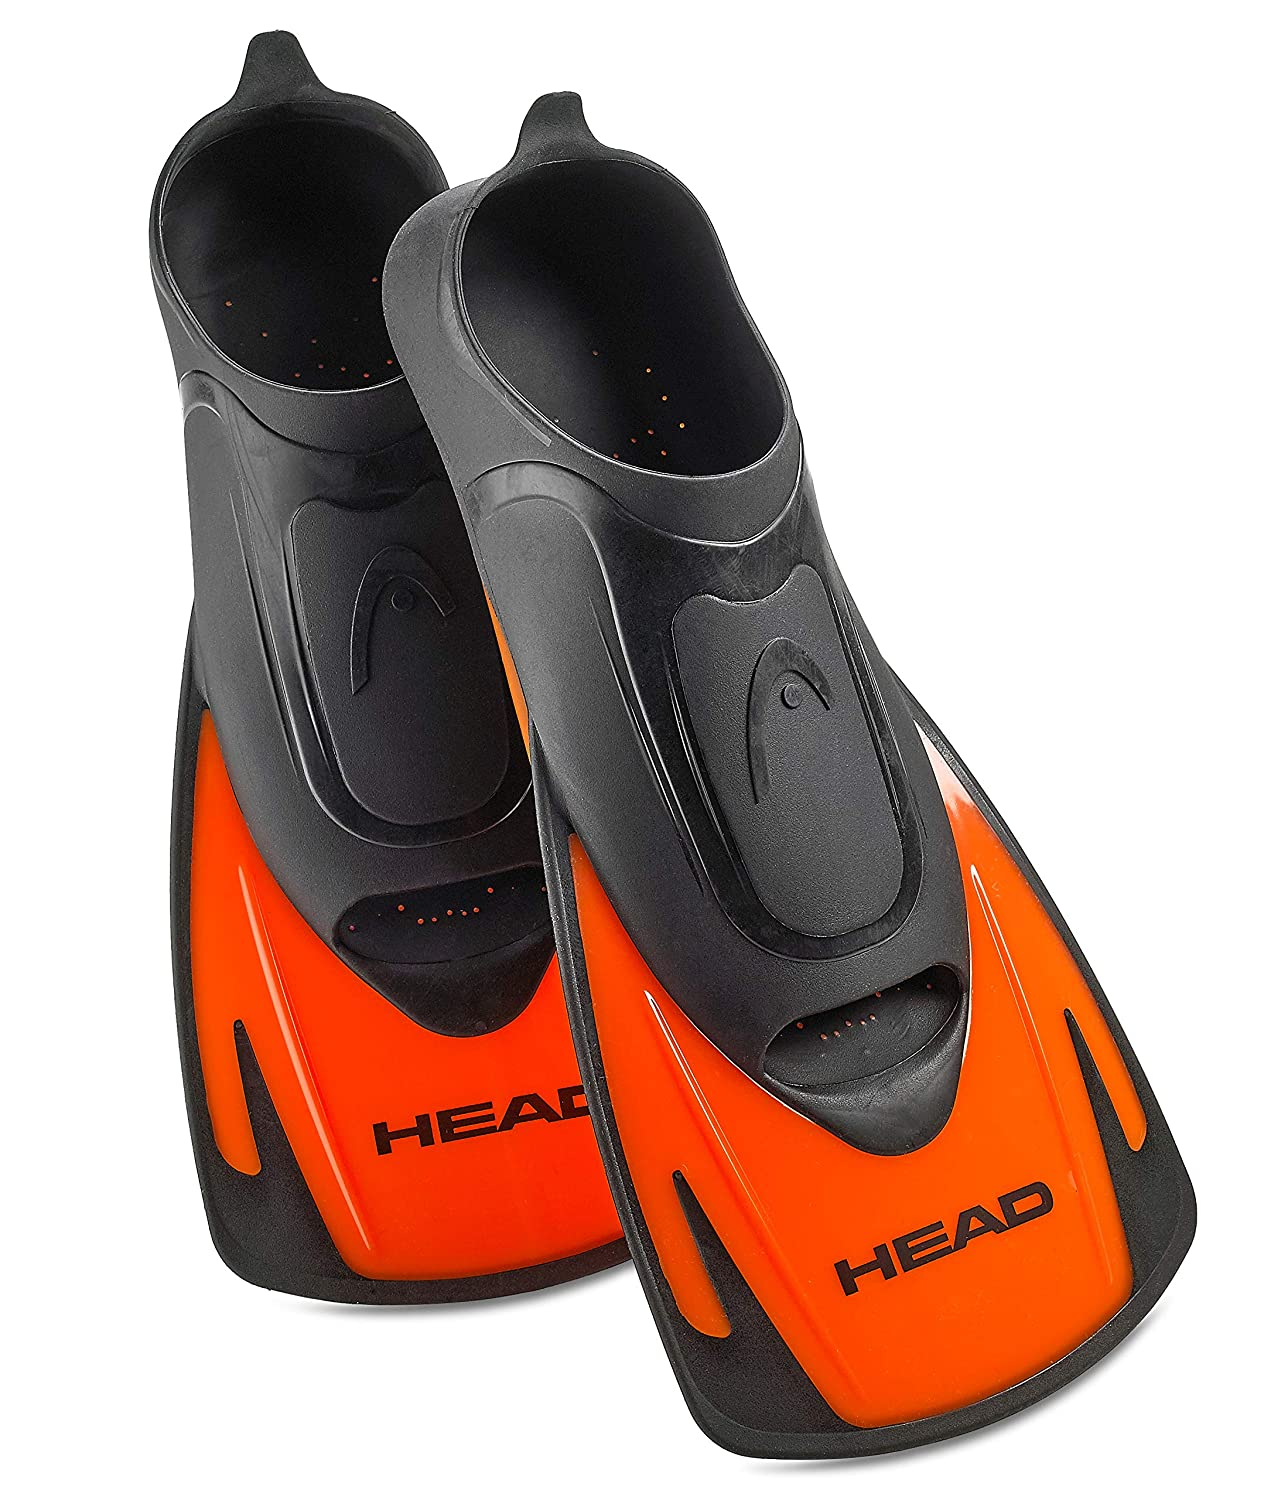 Head Energy Swim Fin, Size 9.5/10.5 for Water Aerobics and Swimm